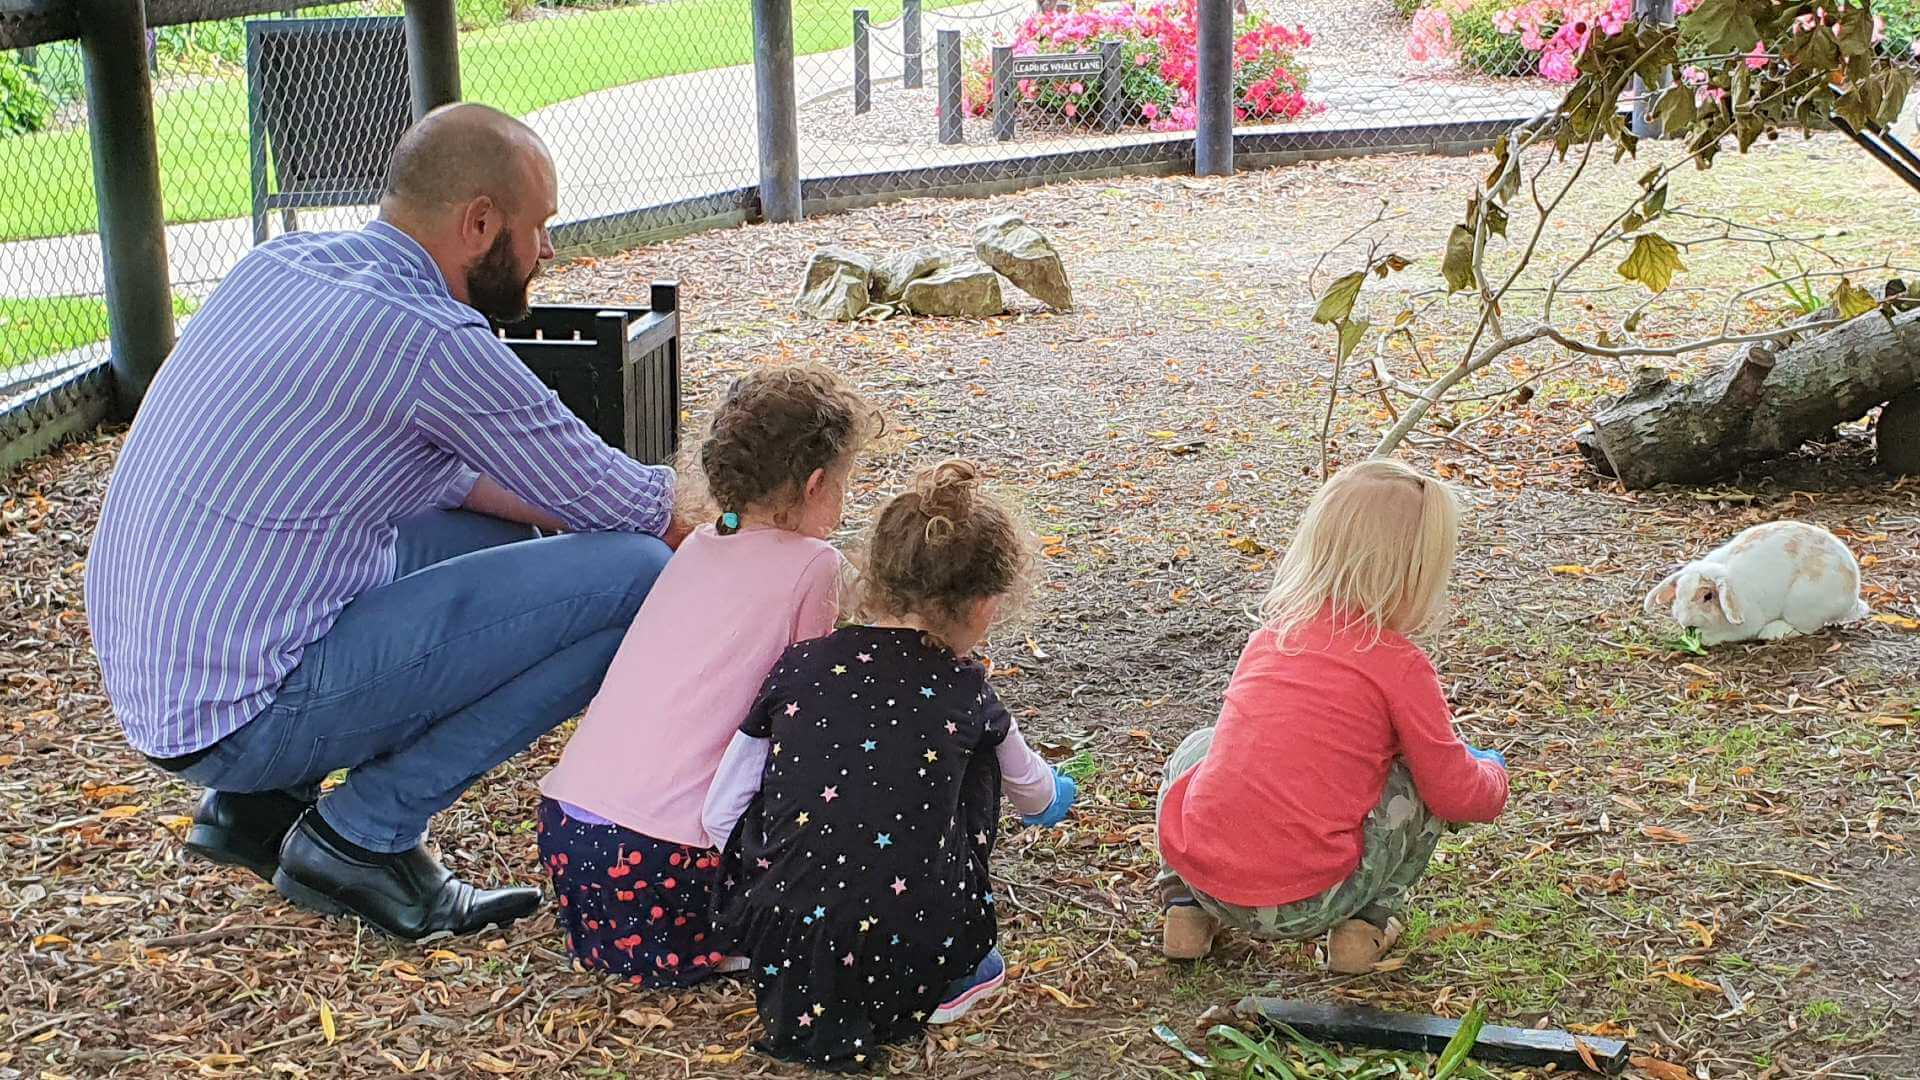 Top 10 things to do with kids - Animal Encounter @ Sculptureum